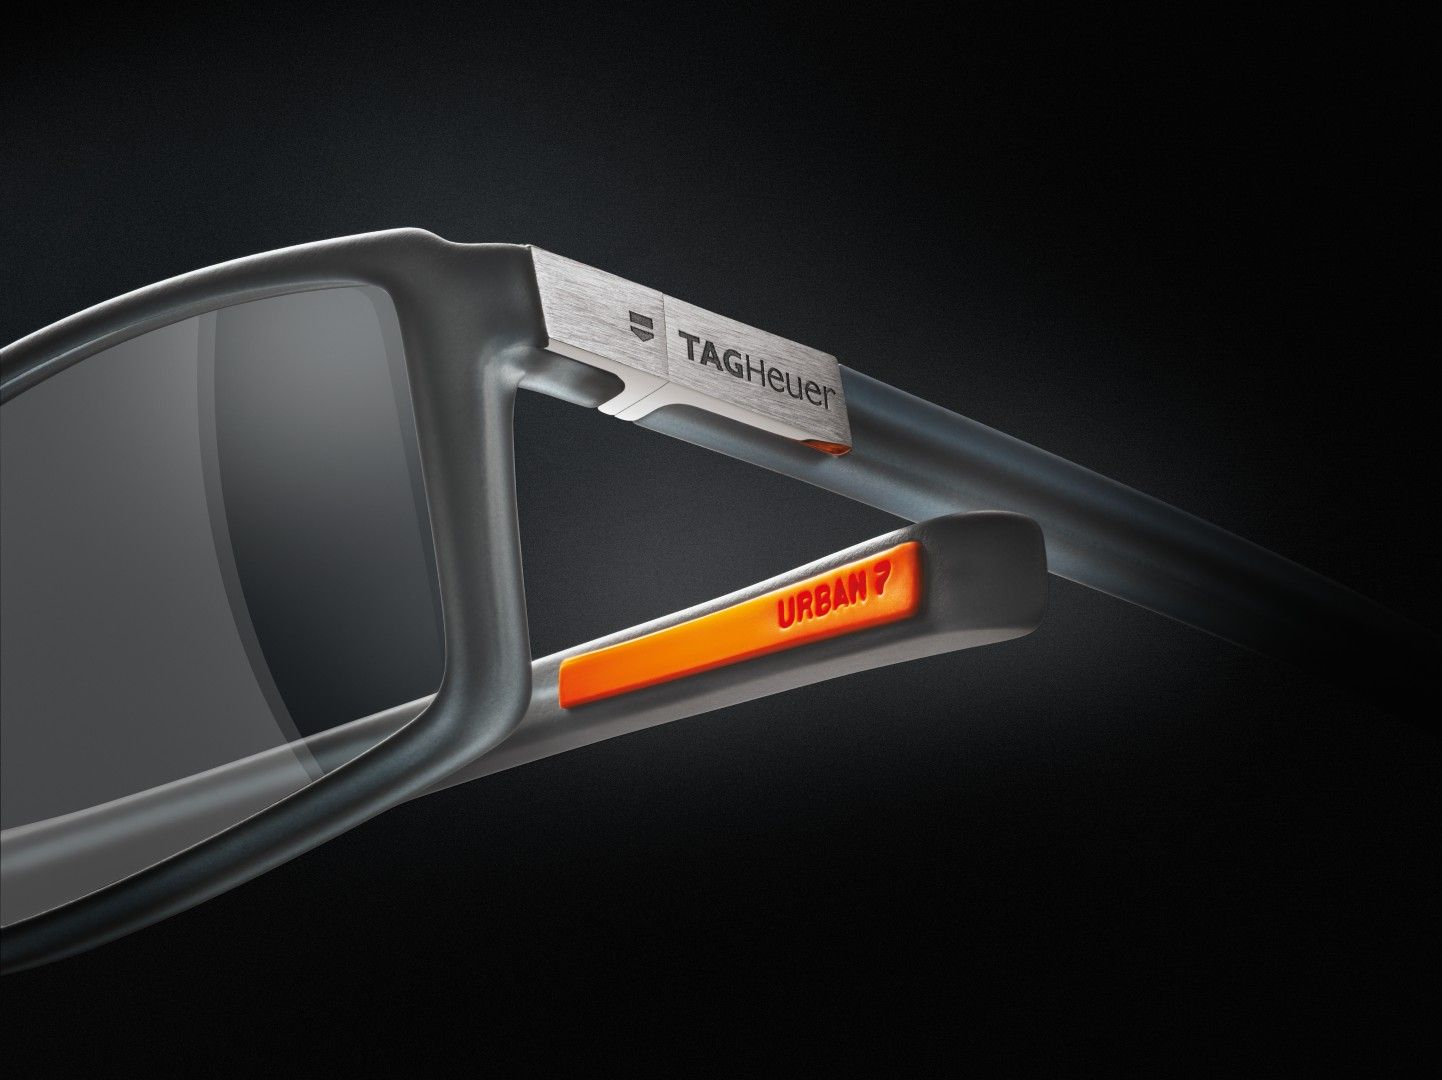 TAG HEUER   Urban 7   SUN GLASSES in 2019   Tag heuer, Optical ... 0814af32a3bb